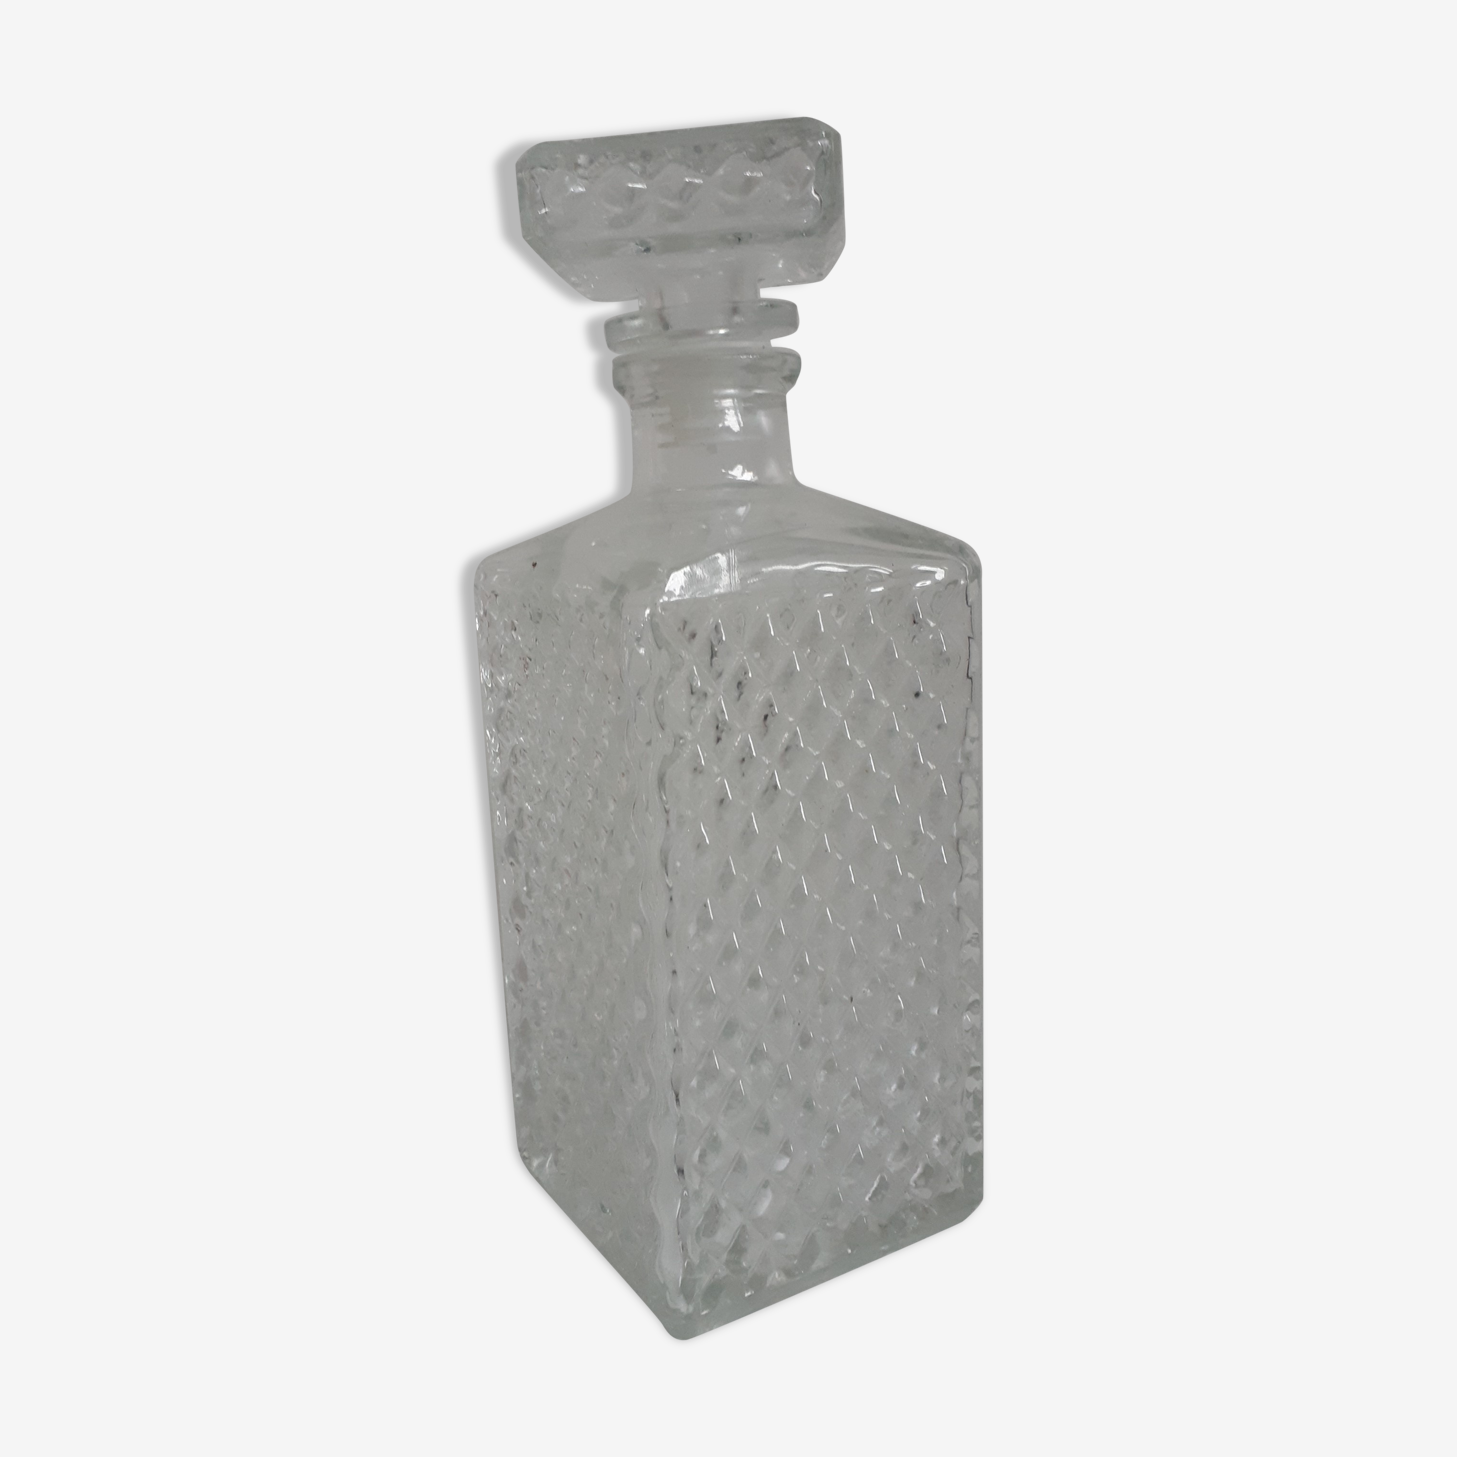 Authentic decanter whiskey relief